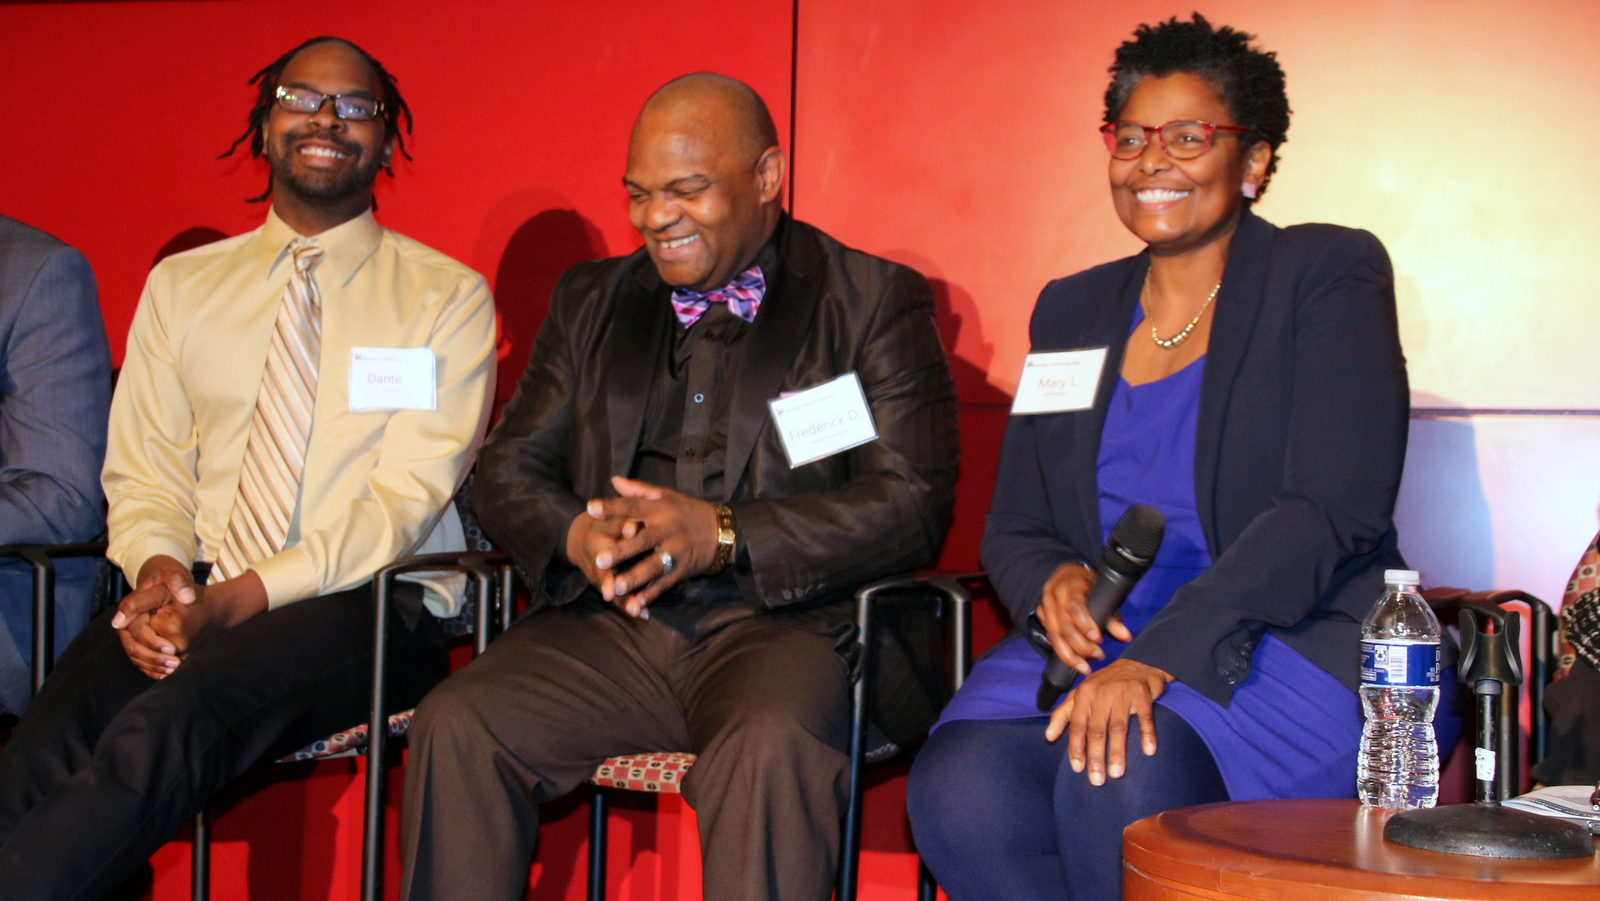 Dante Swinton, Frederick Ware Newsome and Sen. Mary Washington at a mayoral candidates event. (Fern Shen)